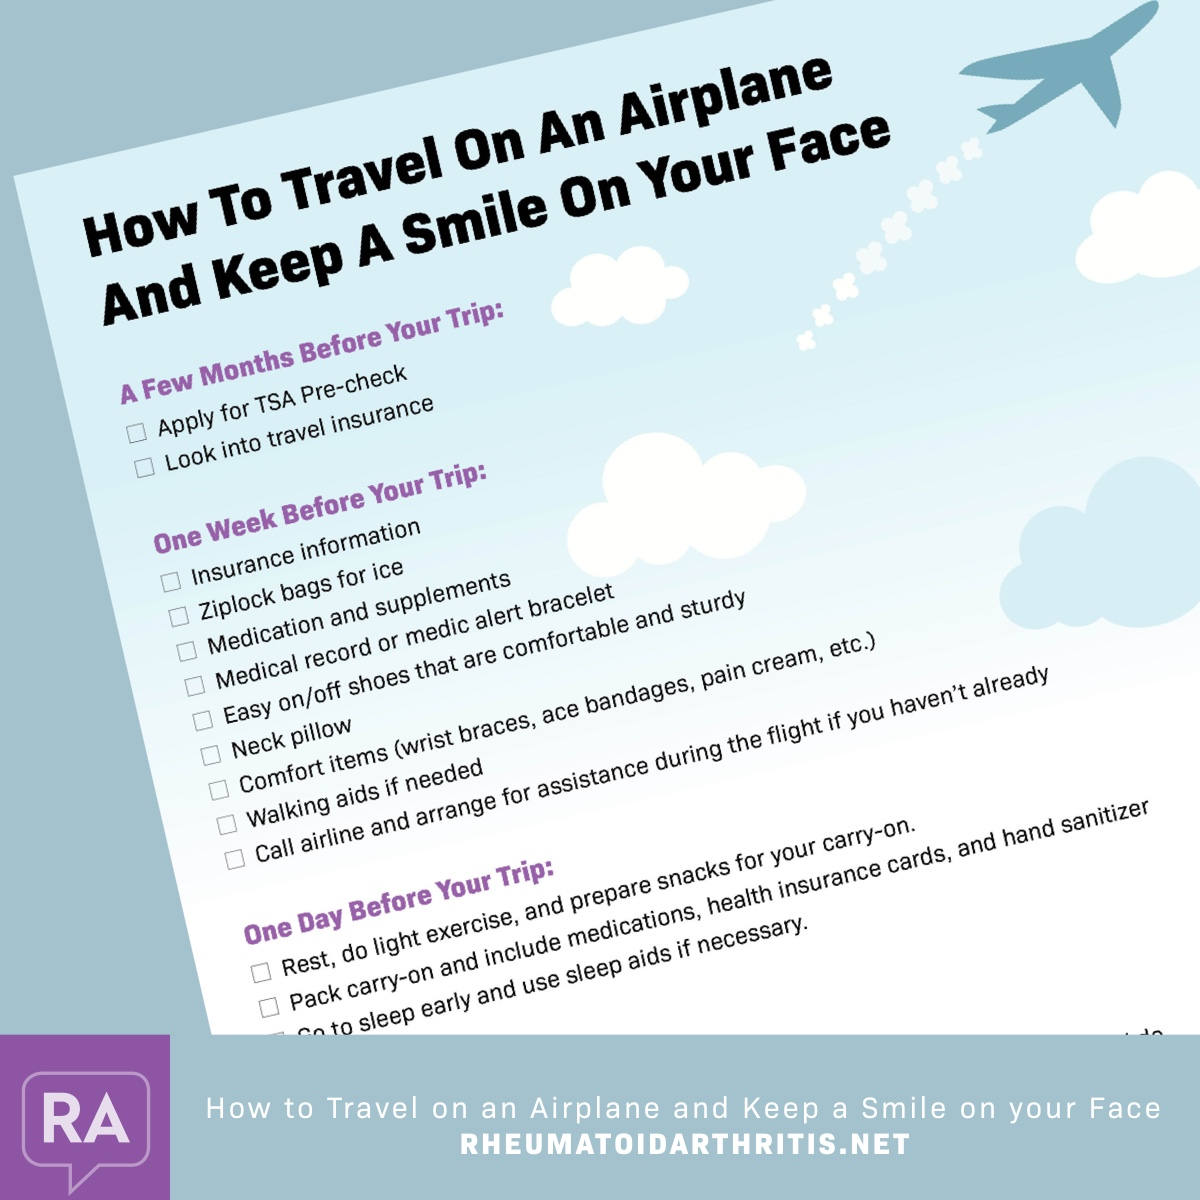 how to travel on an airplane and keep a smile on your face